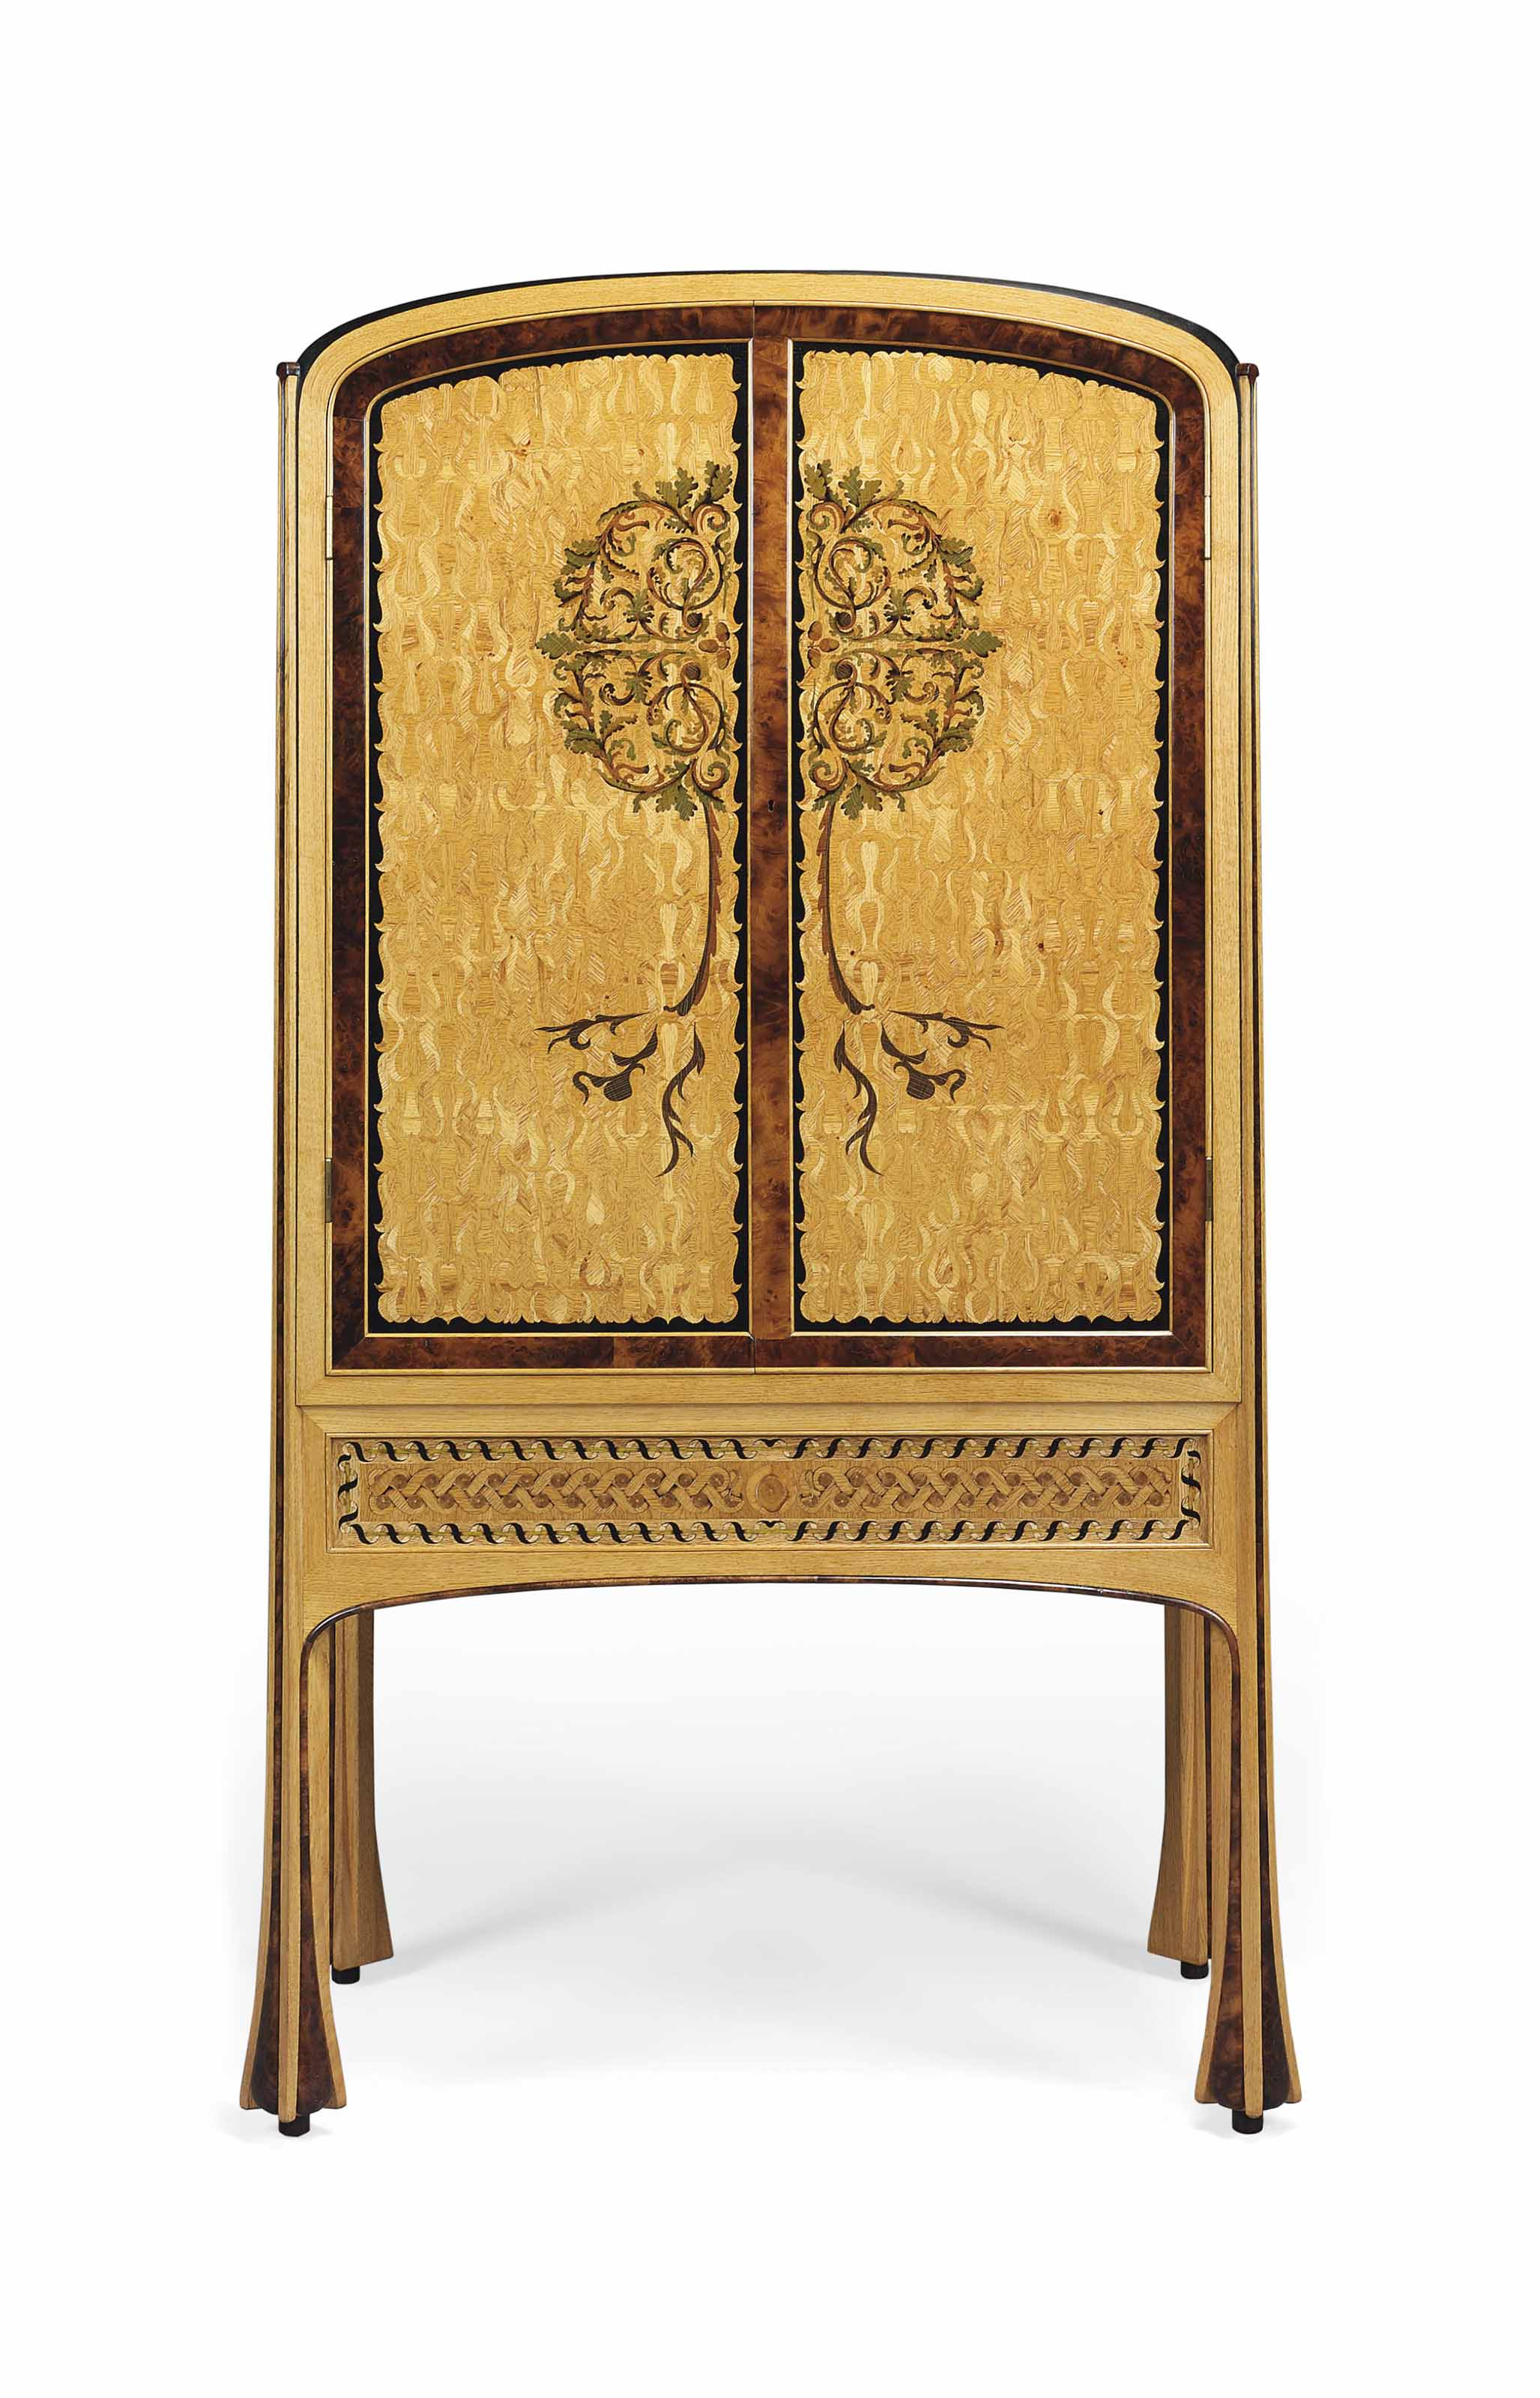 'OAK IN TIME CABINET' A MARQUE